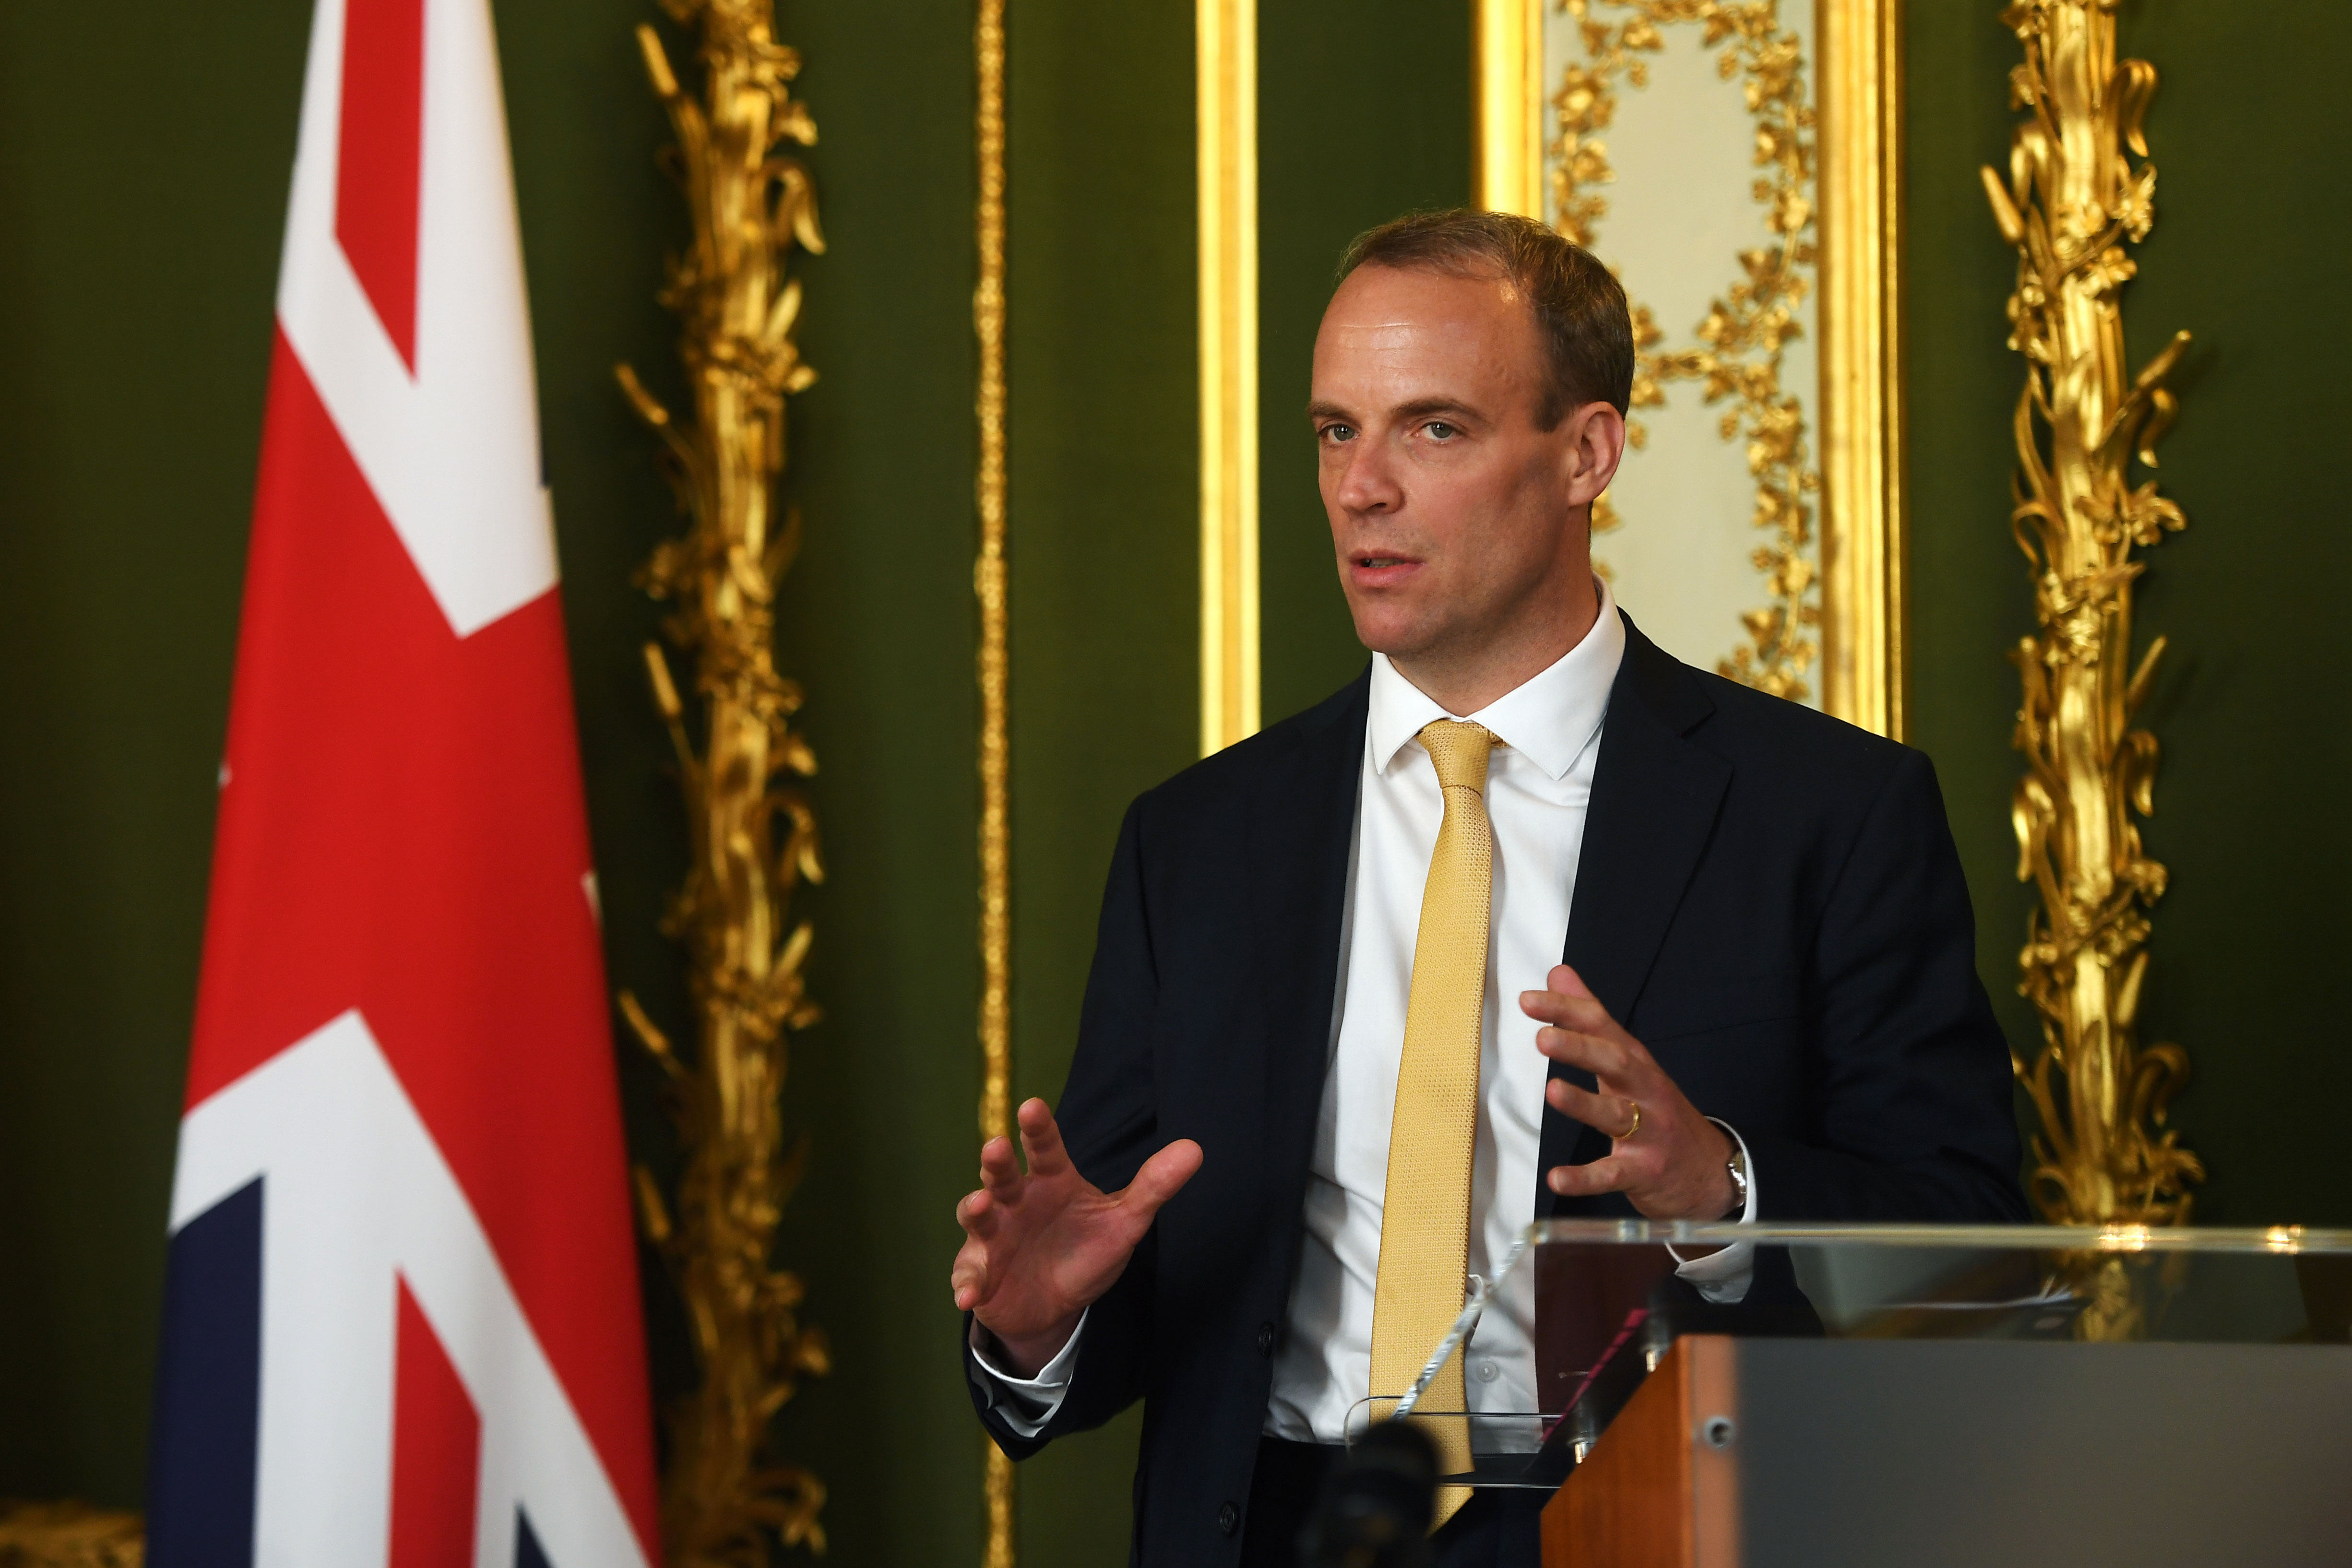 UK Foreign Secretary Dominic Raab speaks during a press conference on July 21 in London.